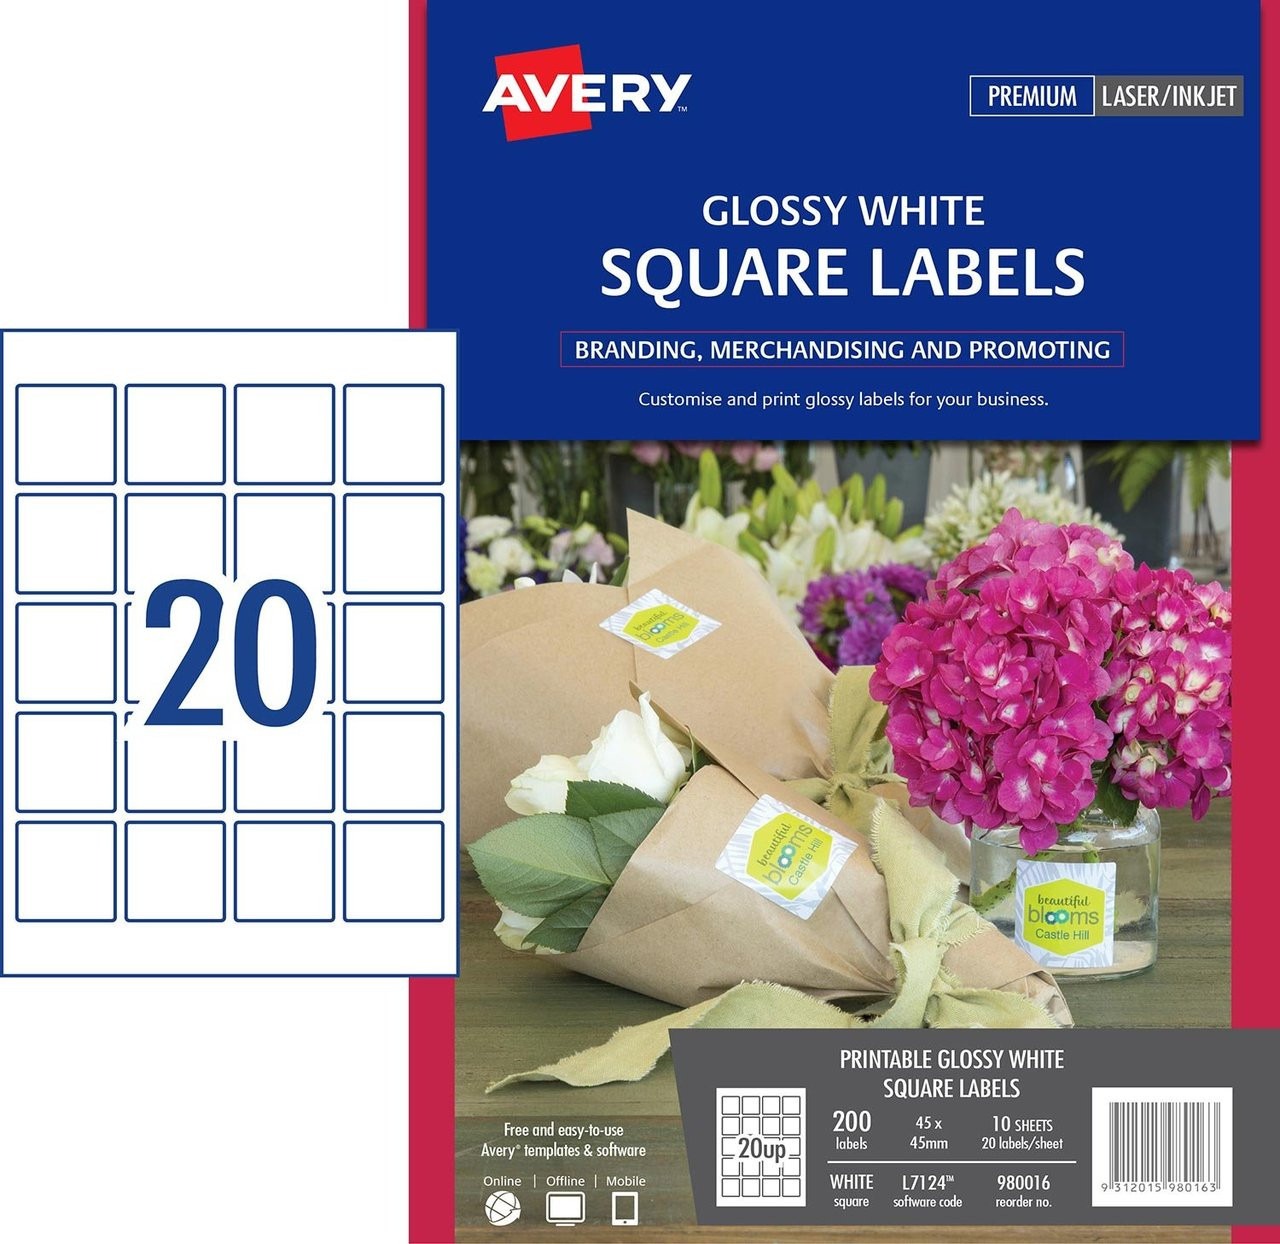 a33557b10639 AVERY 980016 GLOSSY WHITE SQUARE PRODUCT LABELS - L7124 - 200/PACK - 45 X  45 MM |20UP